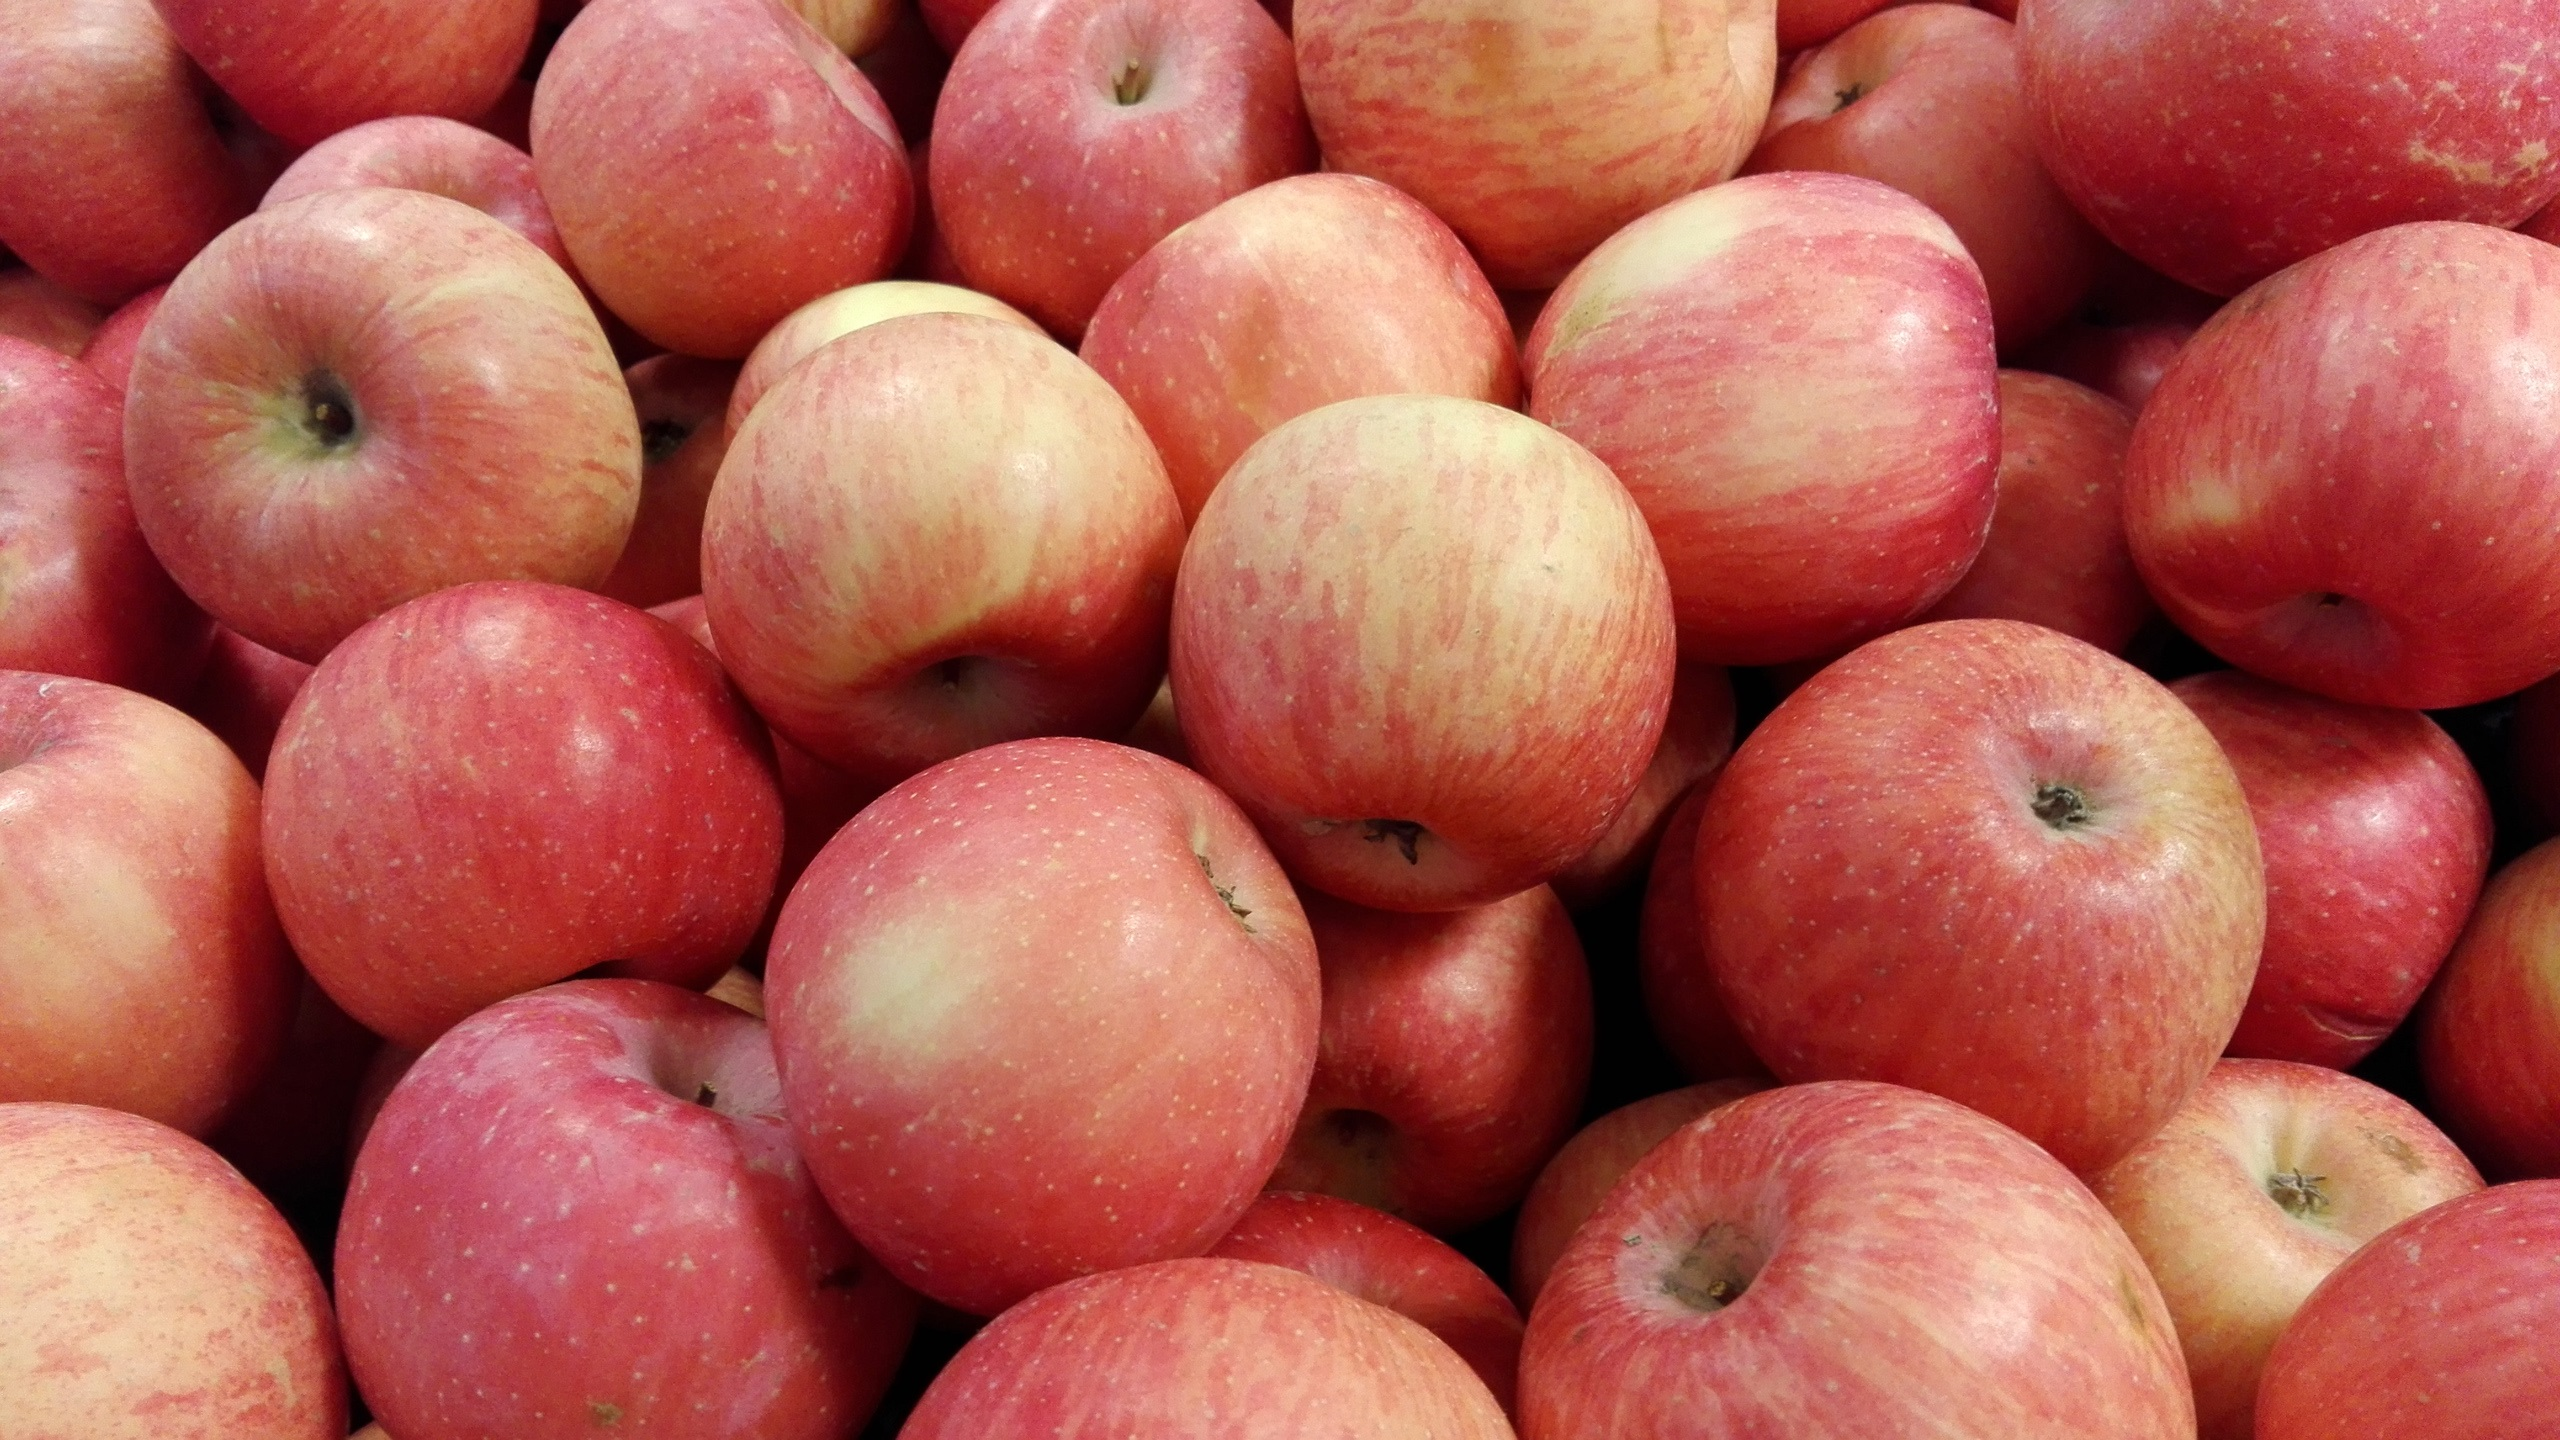 wallpaper many red apples 2560x1440 qhd picture, image